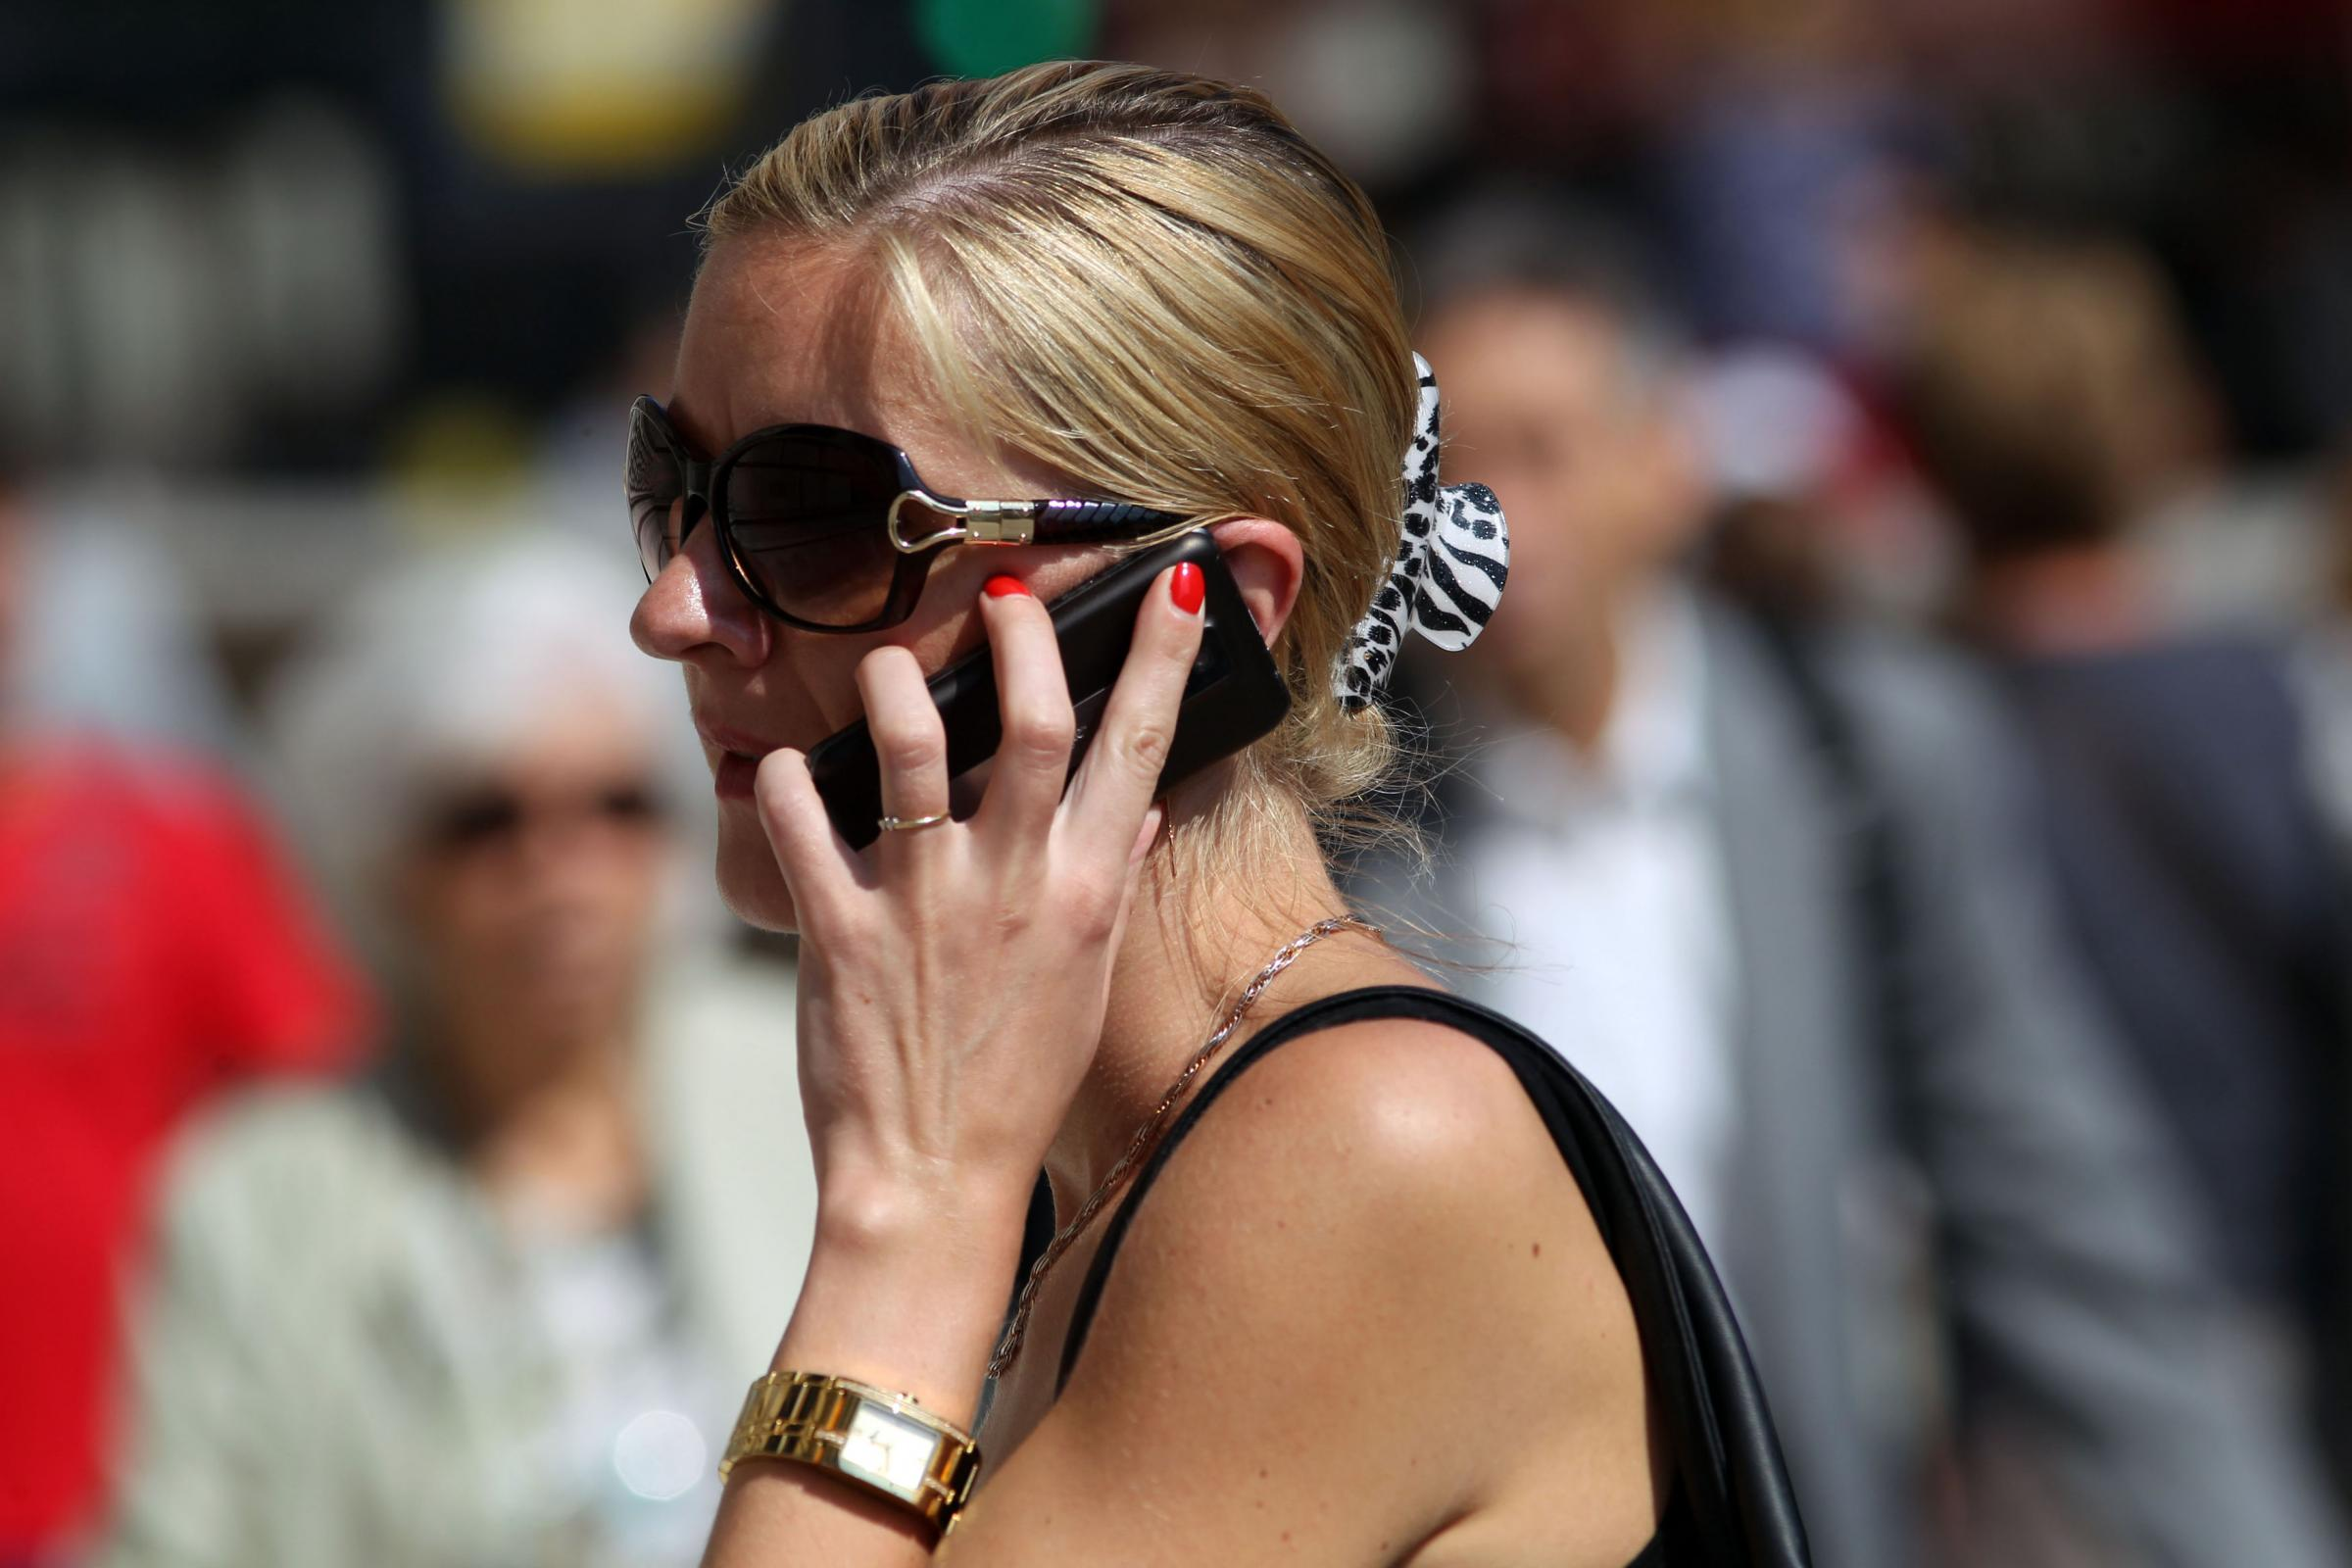 European Union mobile roaming charges ban takes effect